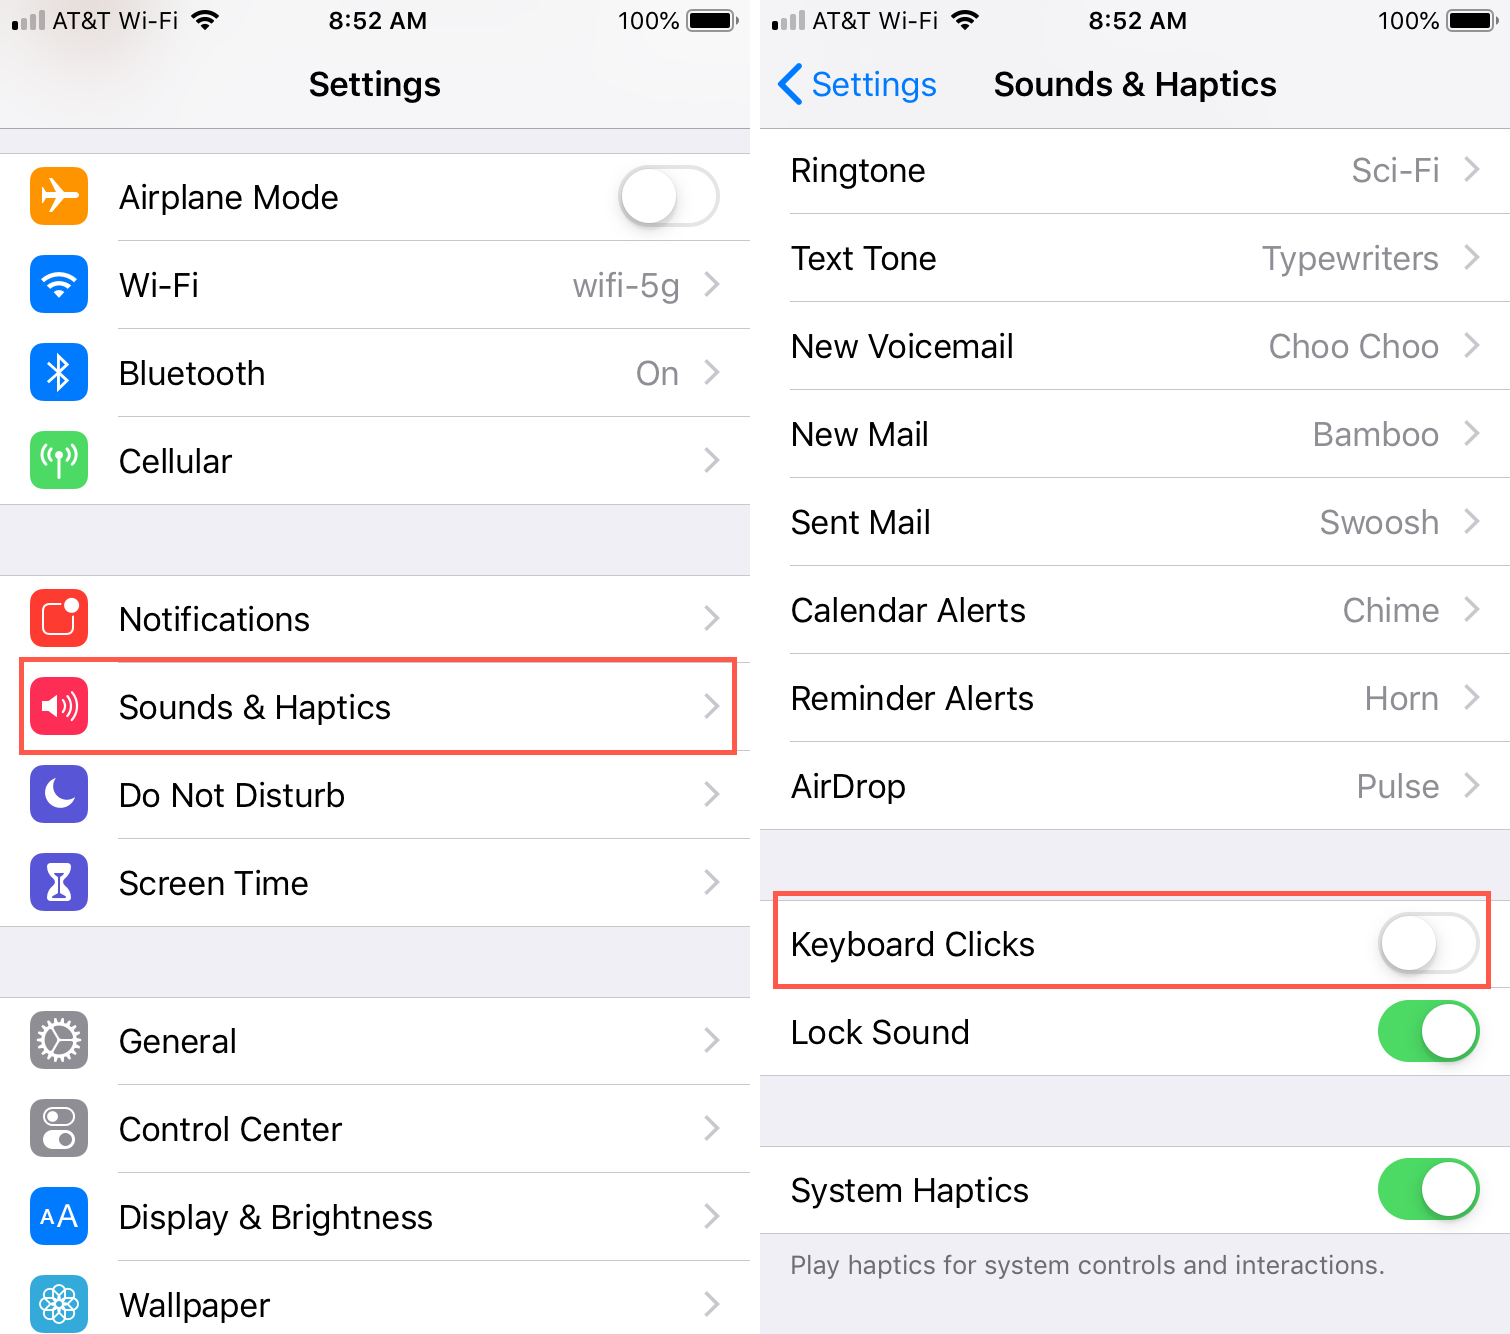 a6b5aed4d16 How to turn off the keyboard click sounds on iPhone and iPad